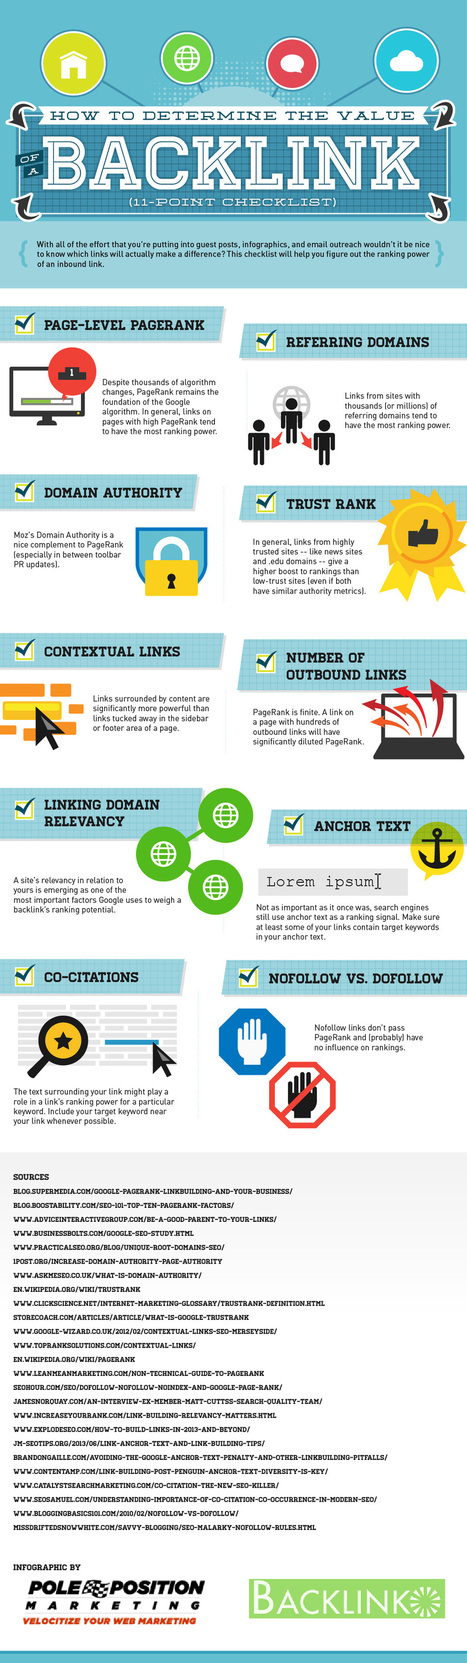 Backlink : 10 critères de qualité en Infographie | Marketing tips | Scoop.it